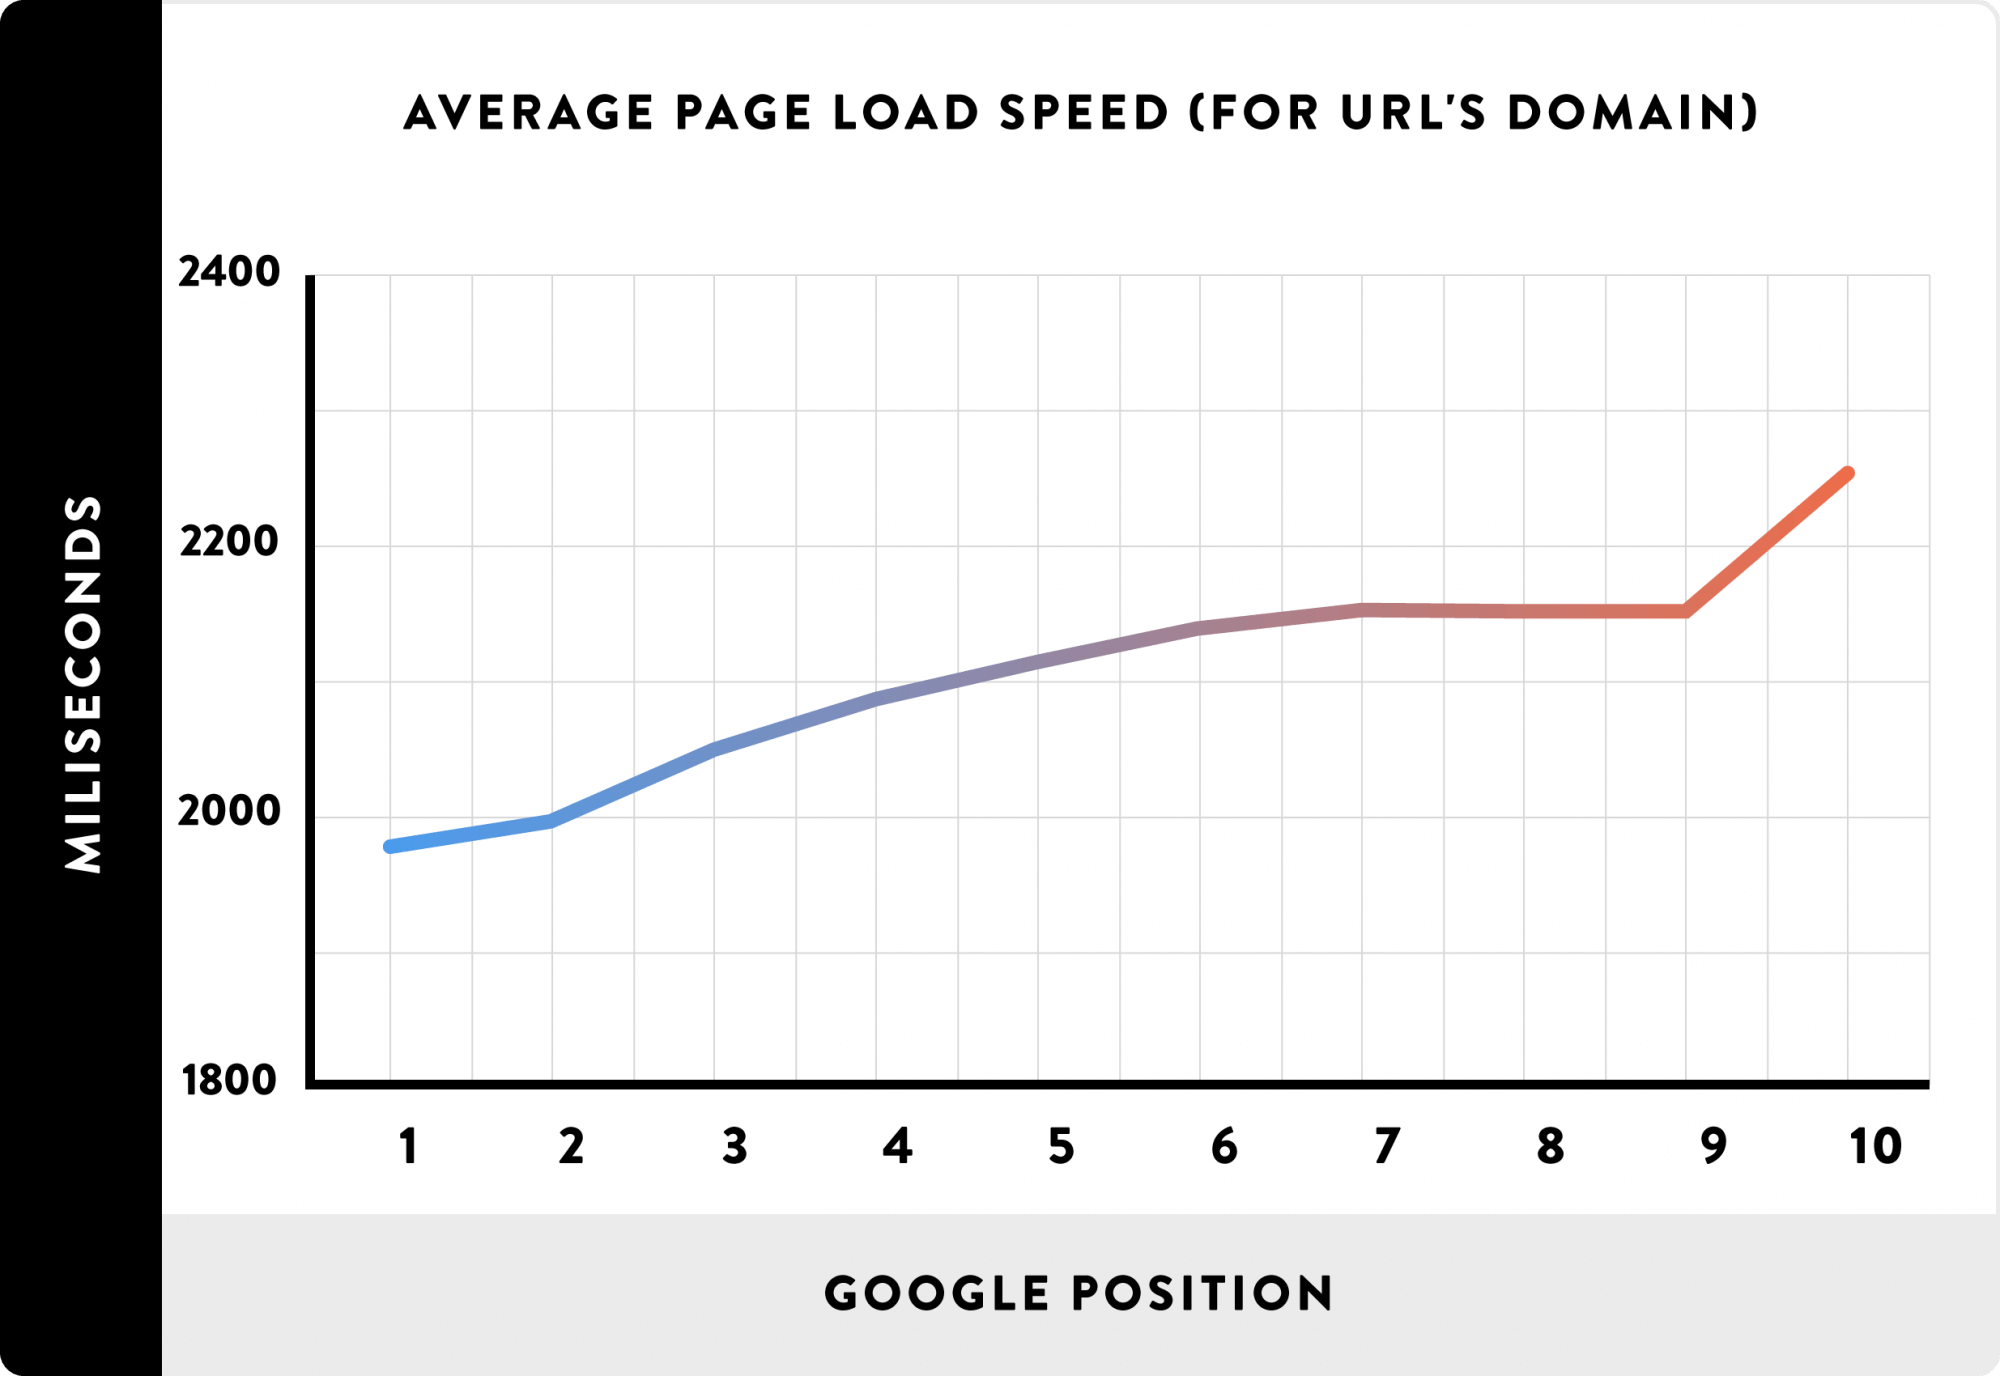 01_Average-Page-Load-Spead-for-URLs-domain_line.png